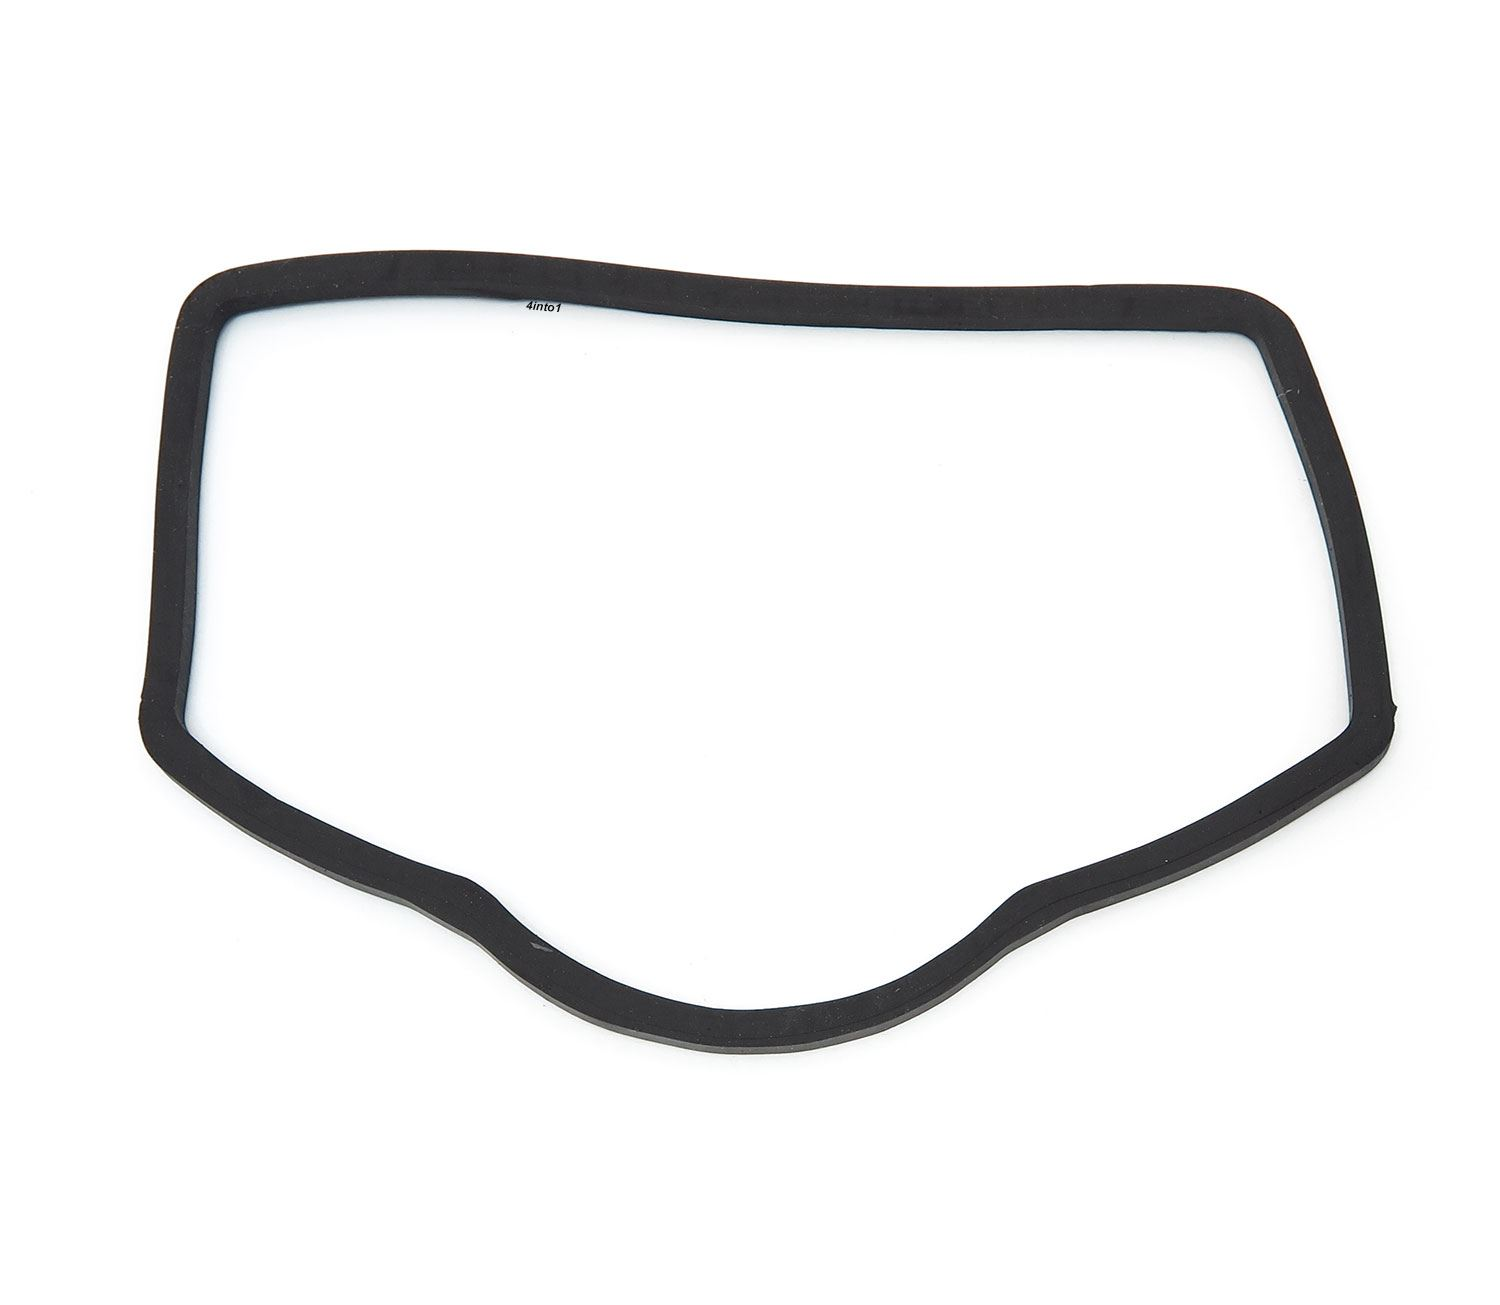 Genuine Honda Tail Light Lens Gasket 077 671 Cb100